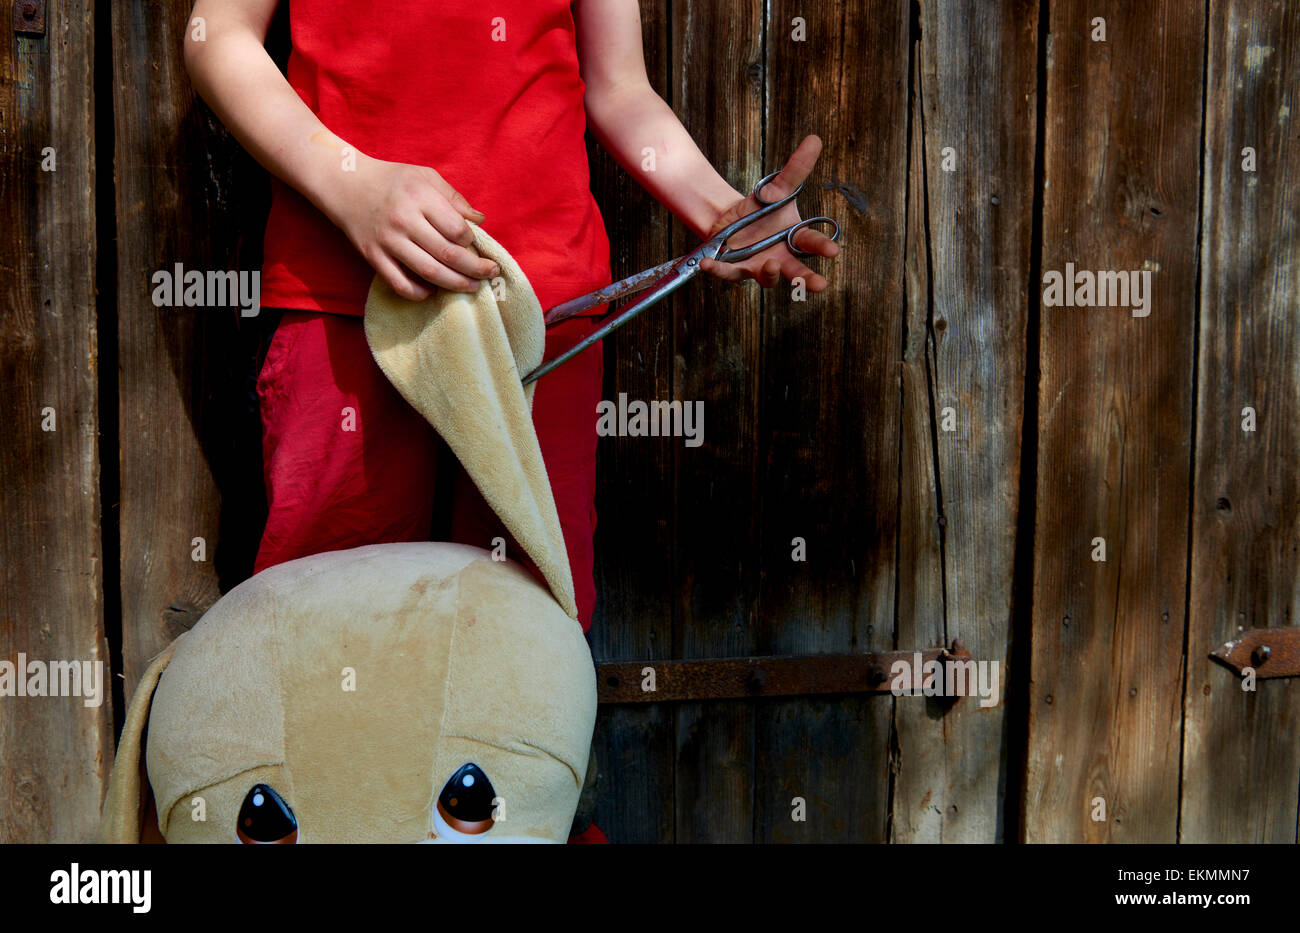 Cruelty Child boy torturing animal pet dog toy - ear cut with scissors - Stock Image